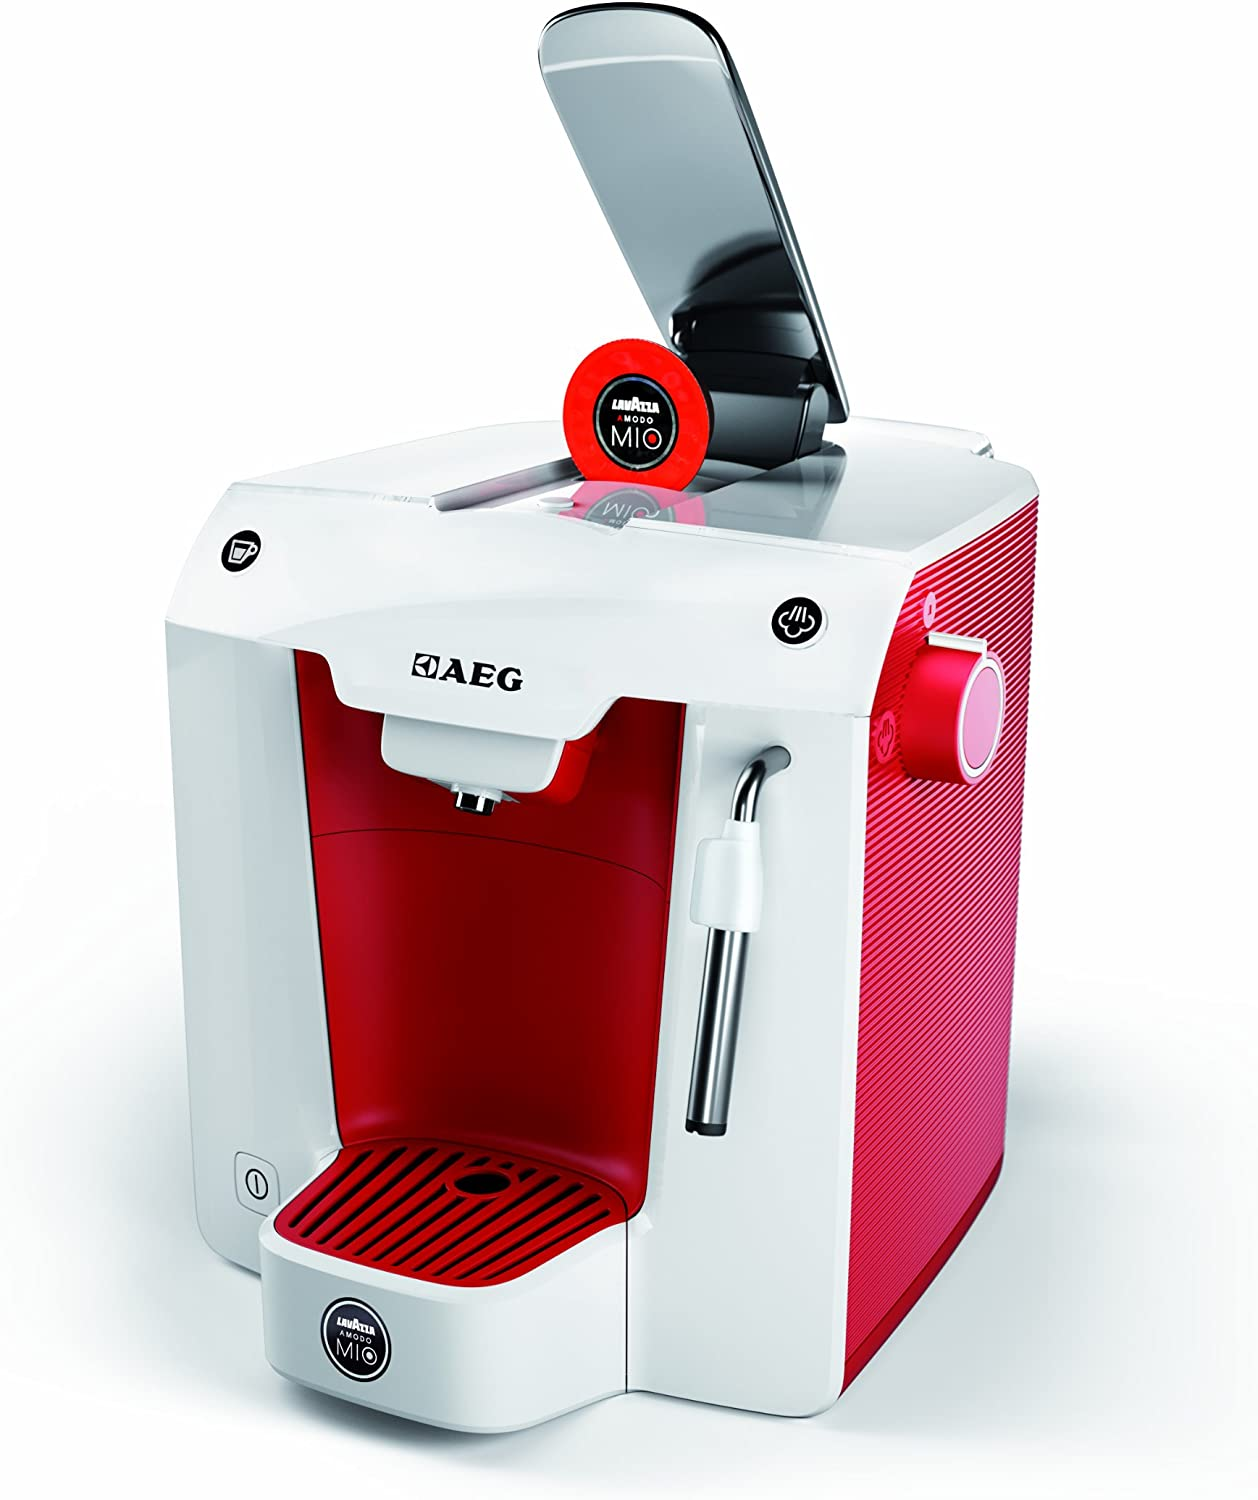 AEG A Modo Mio Favola Lavazza Espresso Coffee Machine, 0.9 Litre, 1300 Watt, Love Red/ Ice White: Amazon.es: Hogar